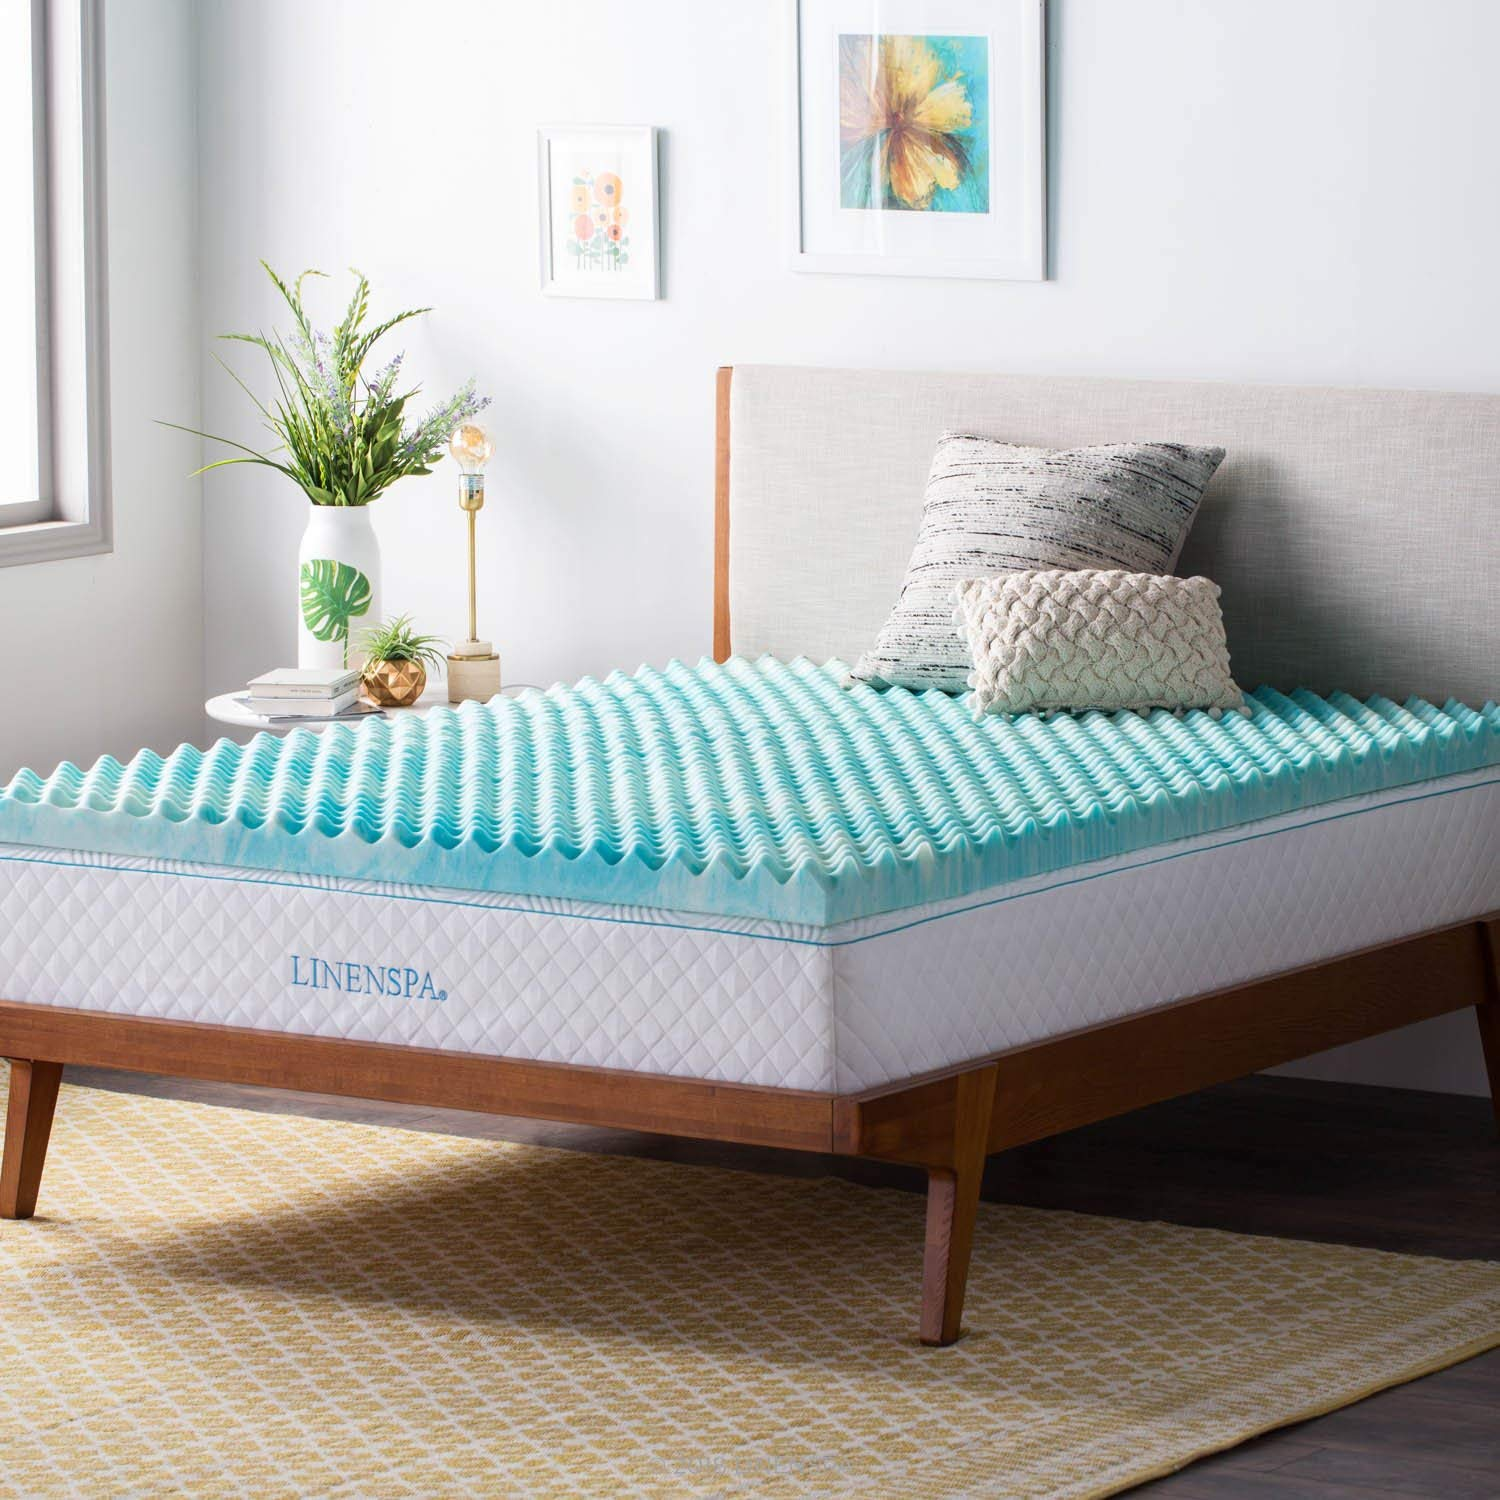 Best Mattress Amazon The Best Mattress Topper For Back Pain Brands And Buying Guide For